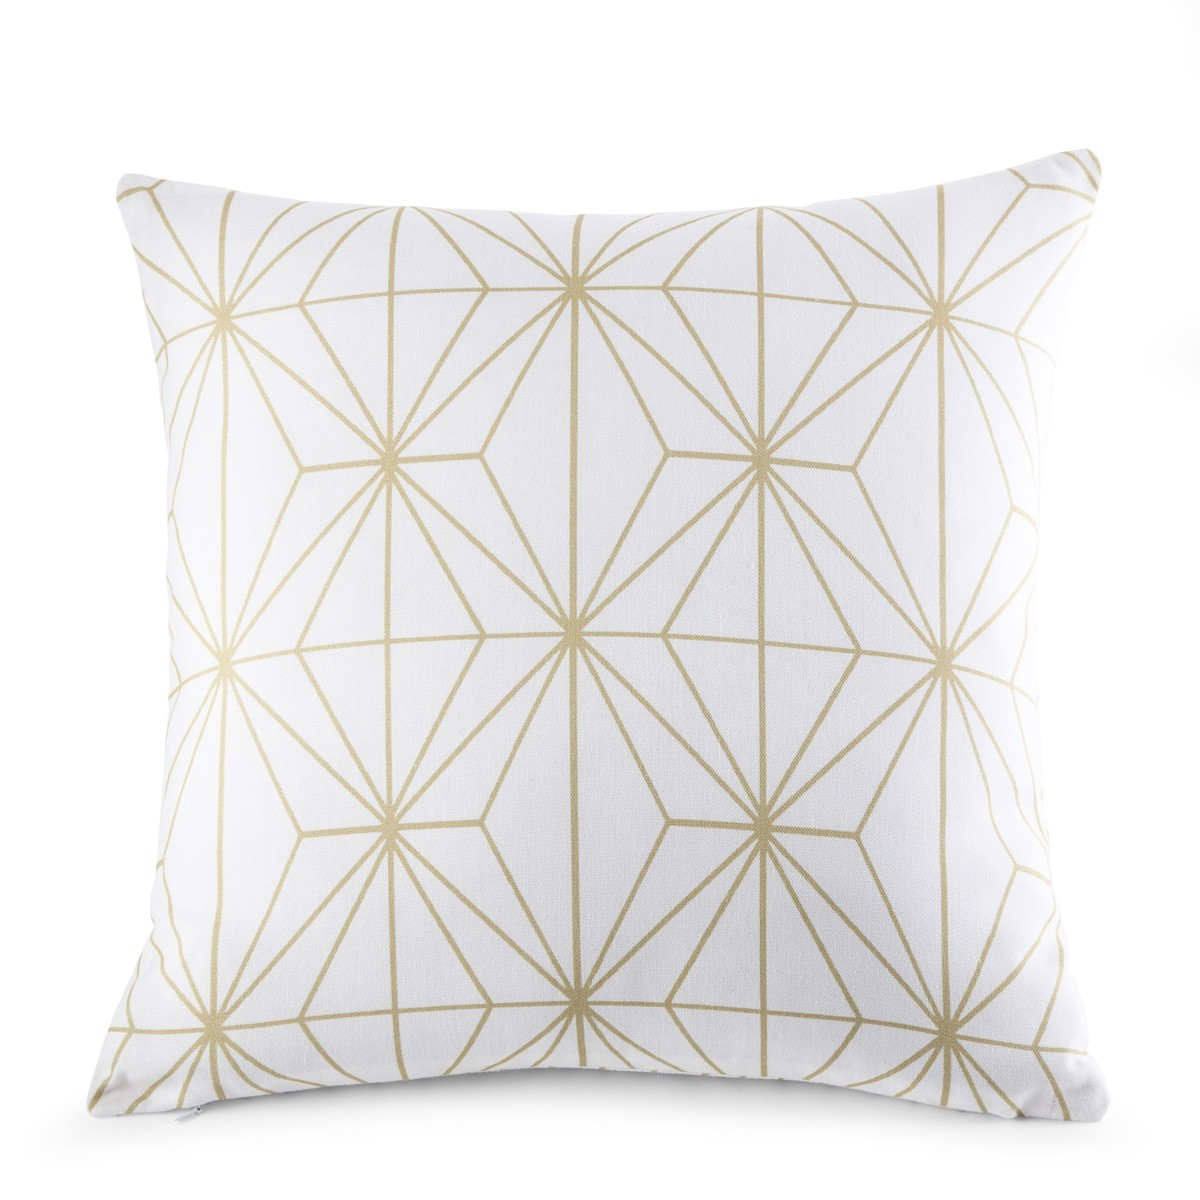 Cushion Cover Ethos White | Bed linen | Tradition des Vosges